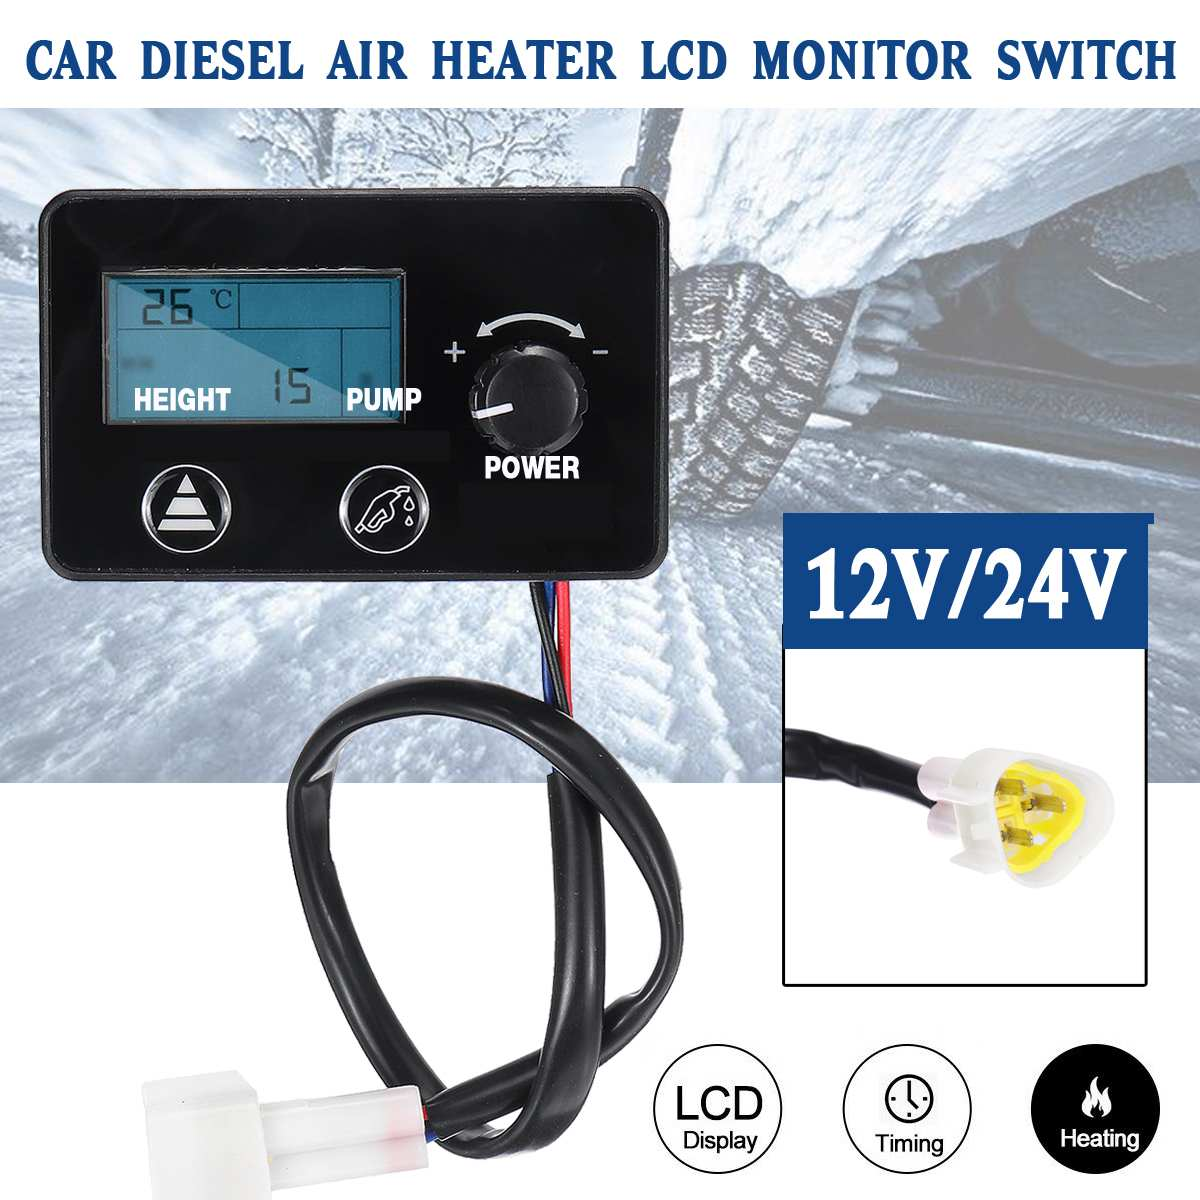 12V//24V LCD Monitor Air Parking Heater Switch Controller for Car Track Diesel Air Heater